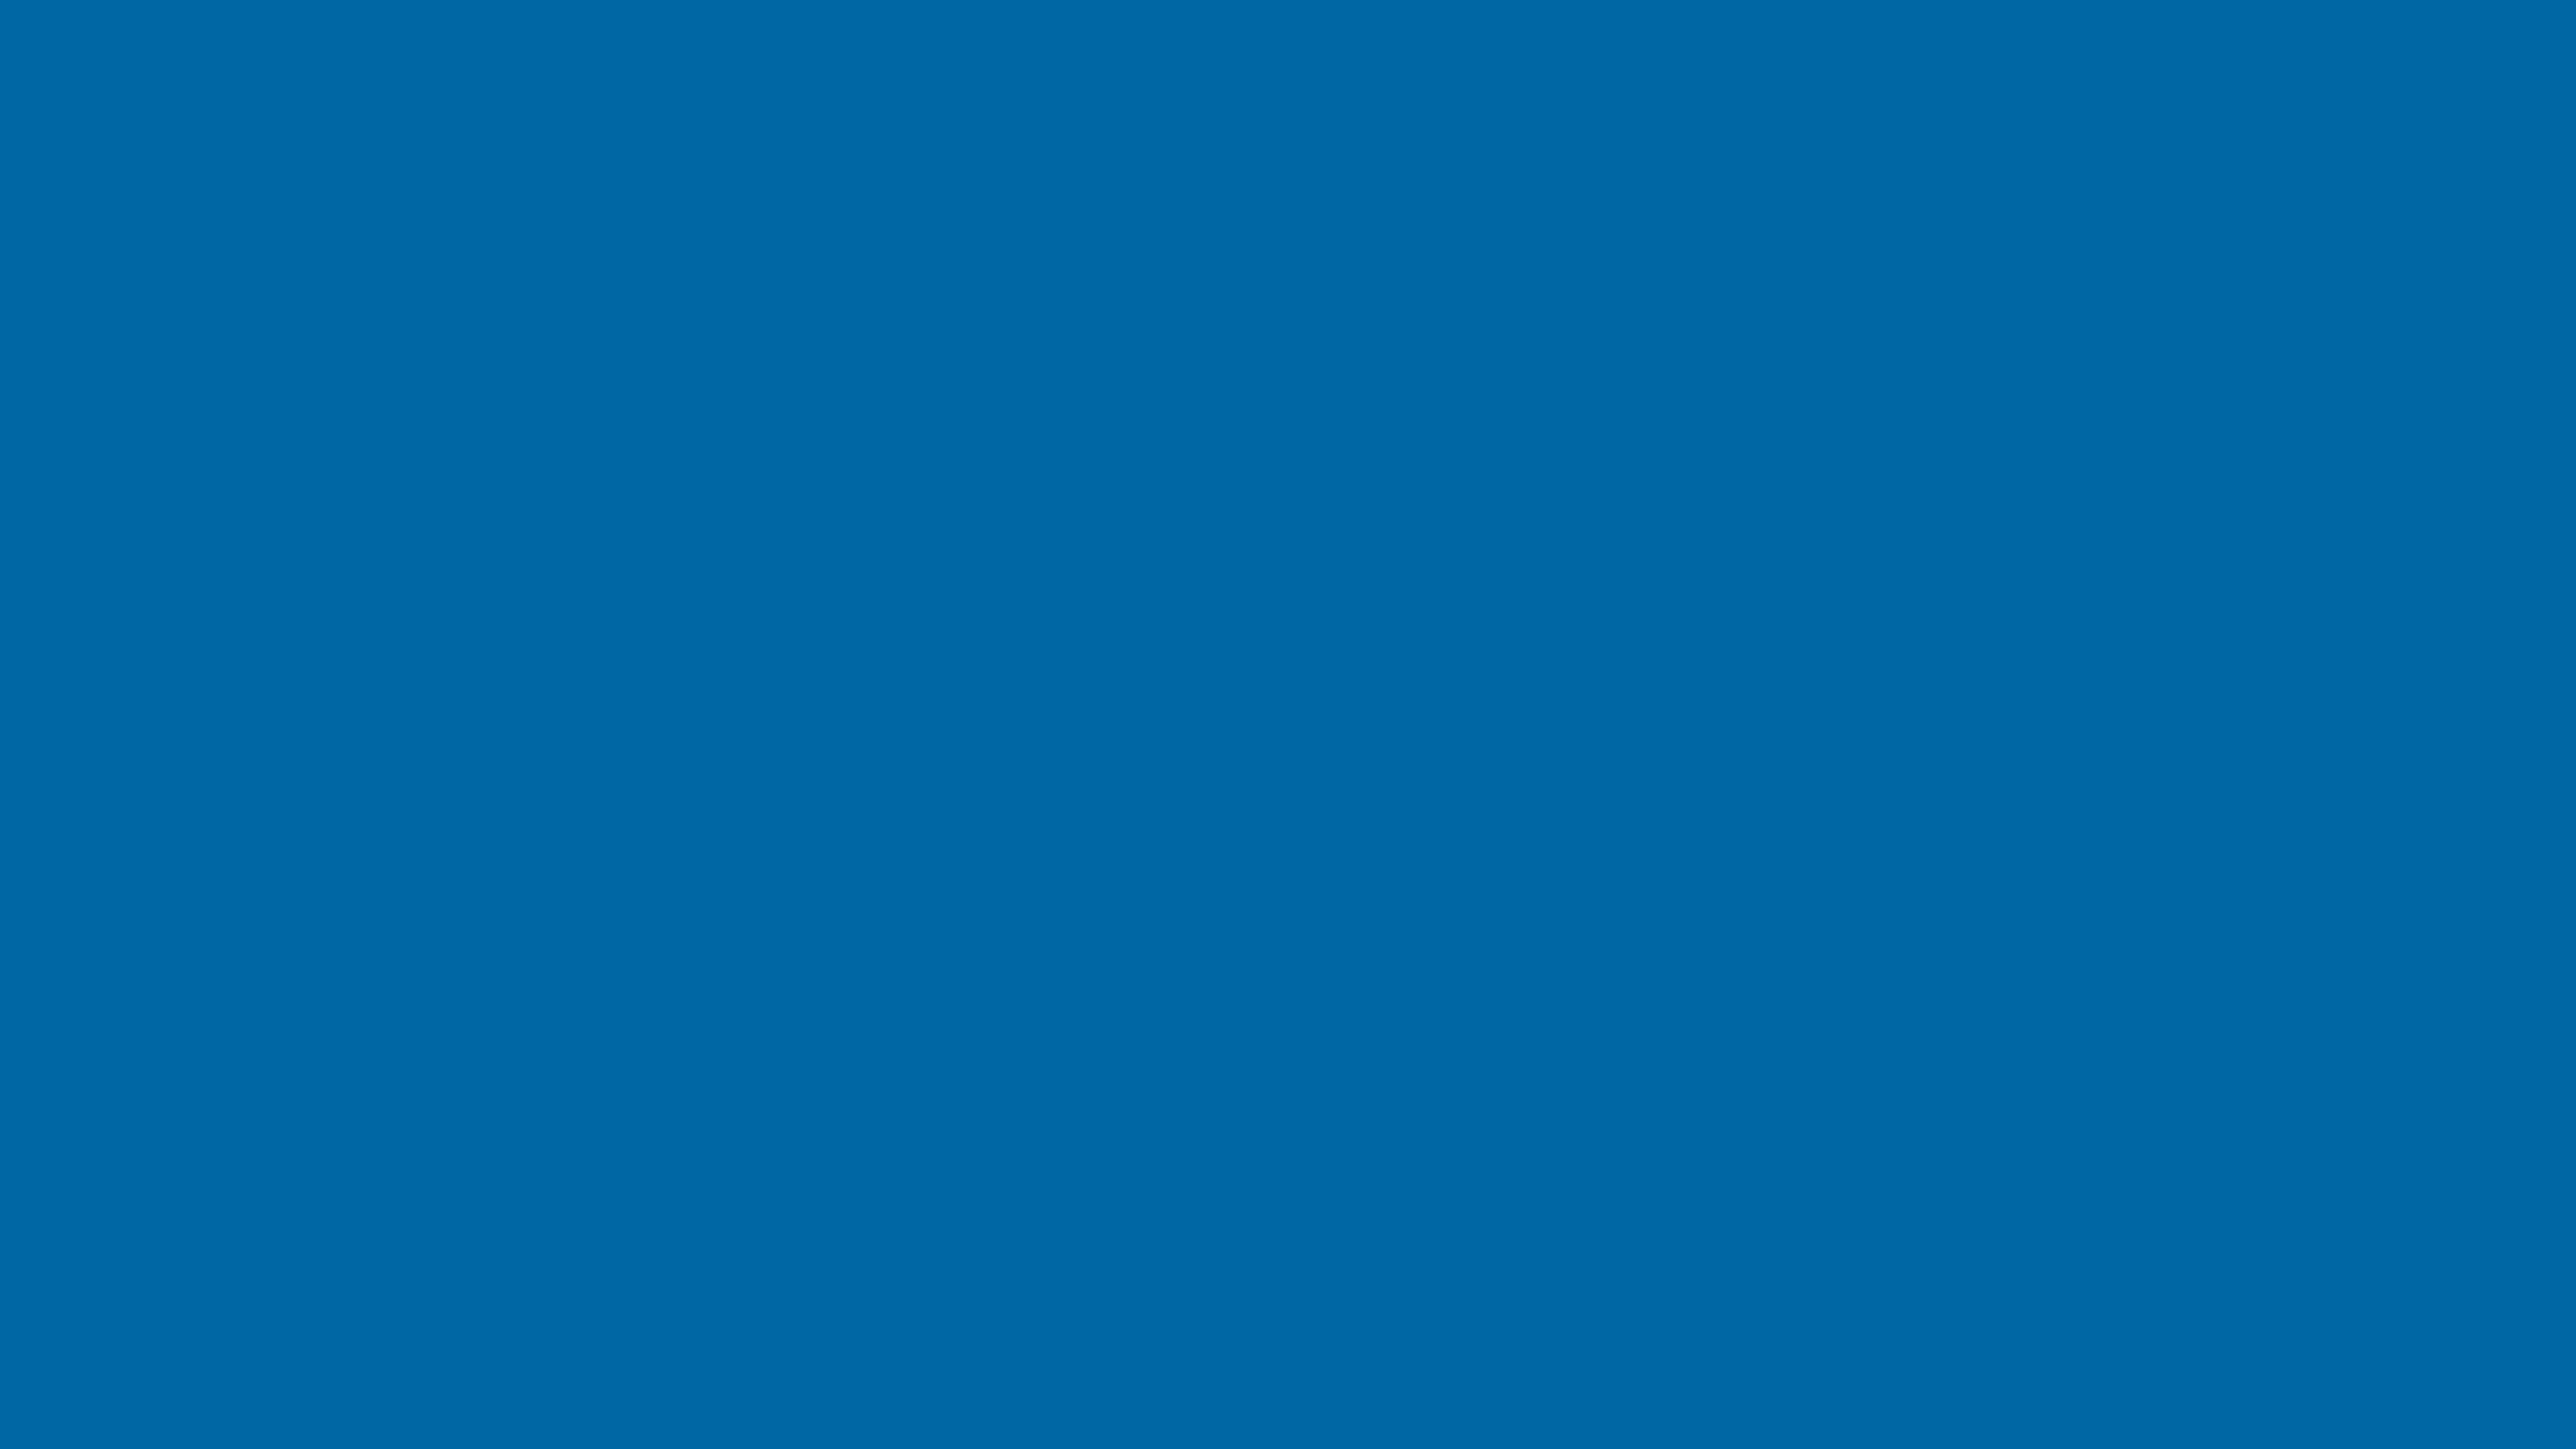 3840x2160 Medium Persian Blue Solid Color Background